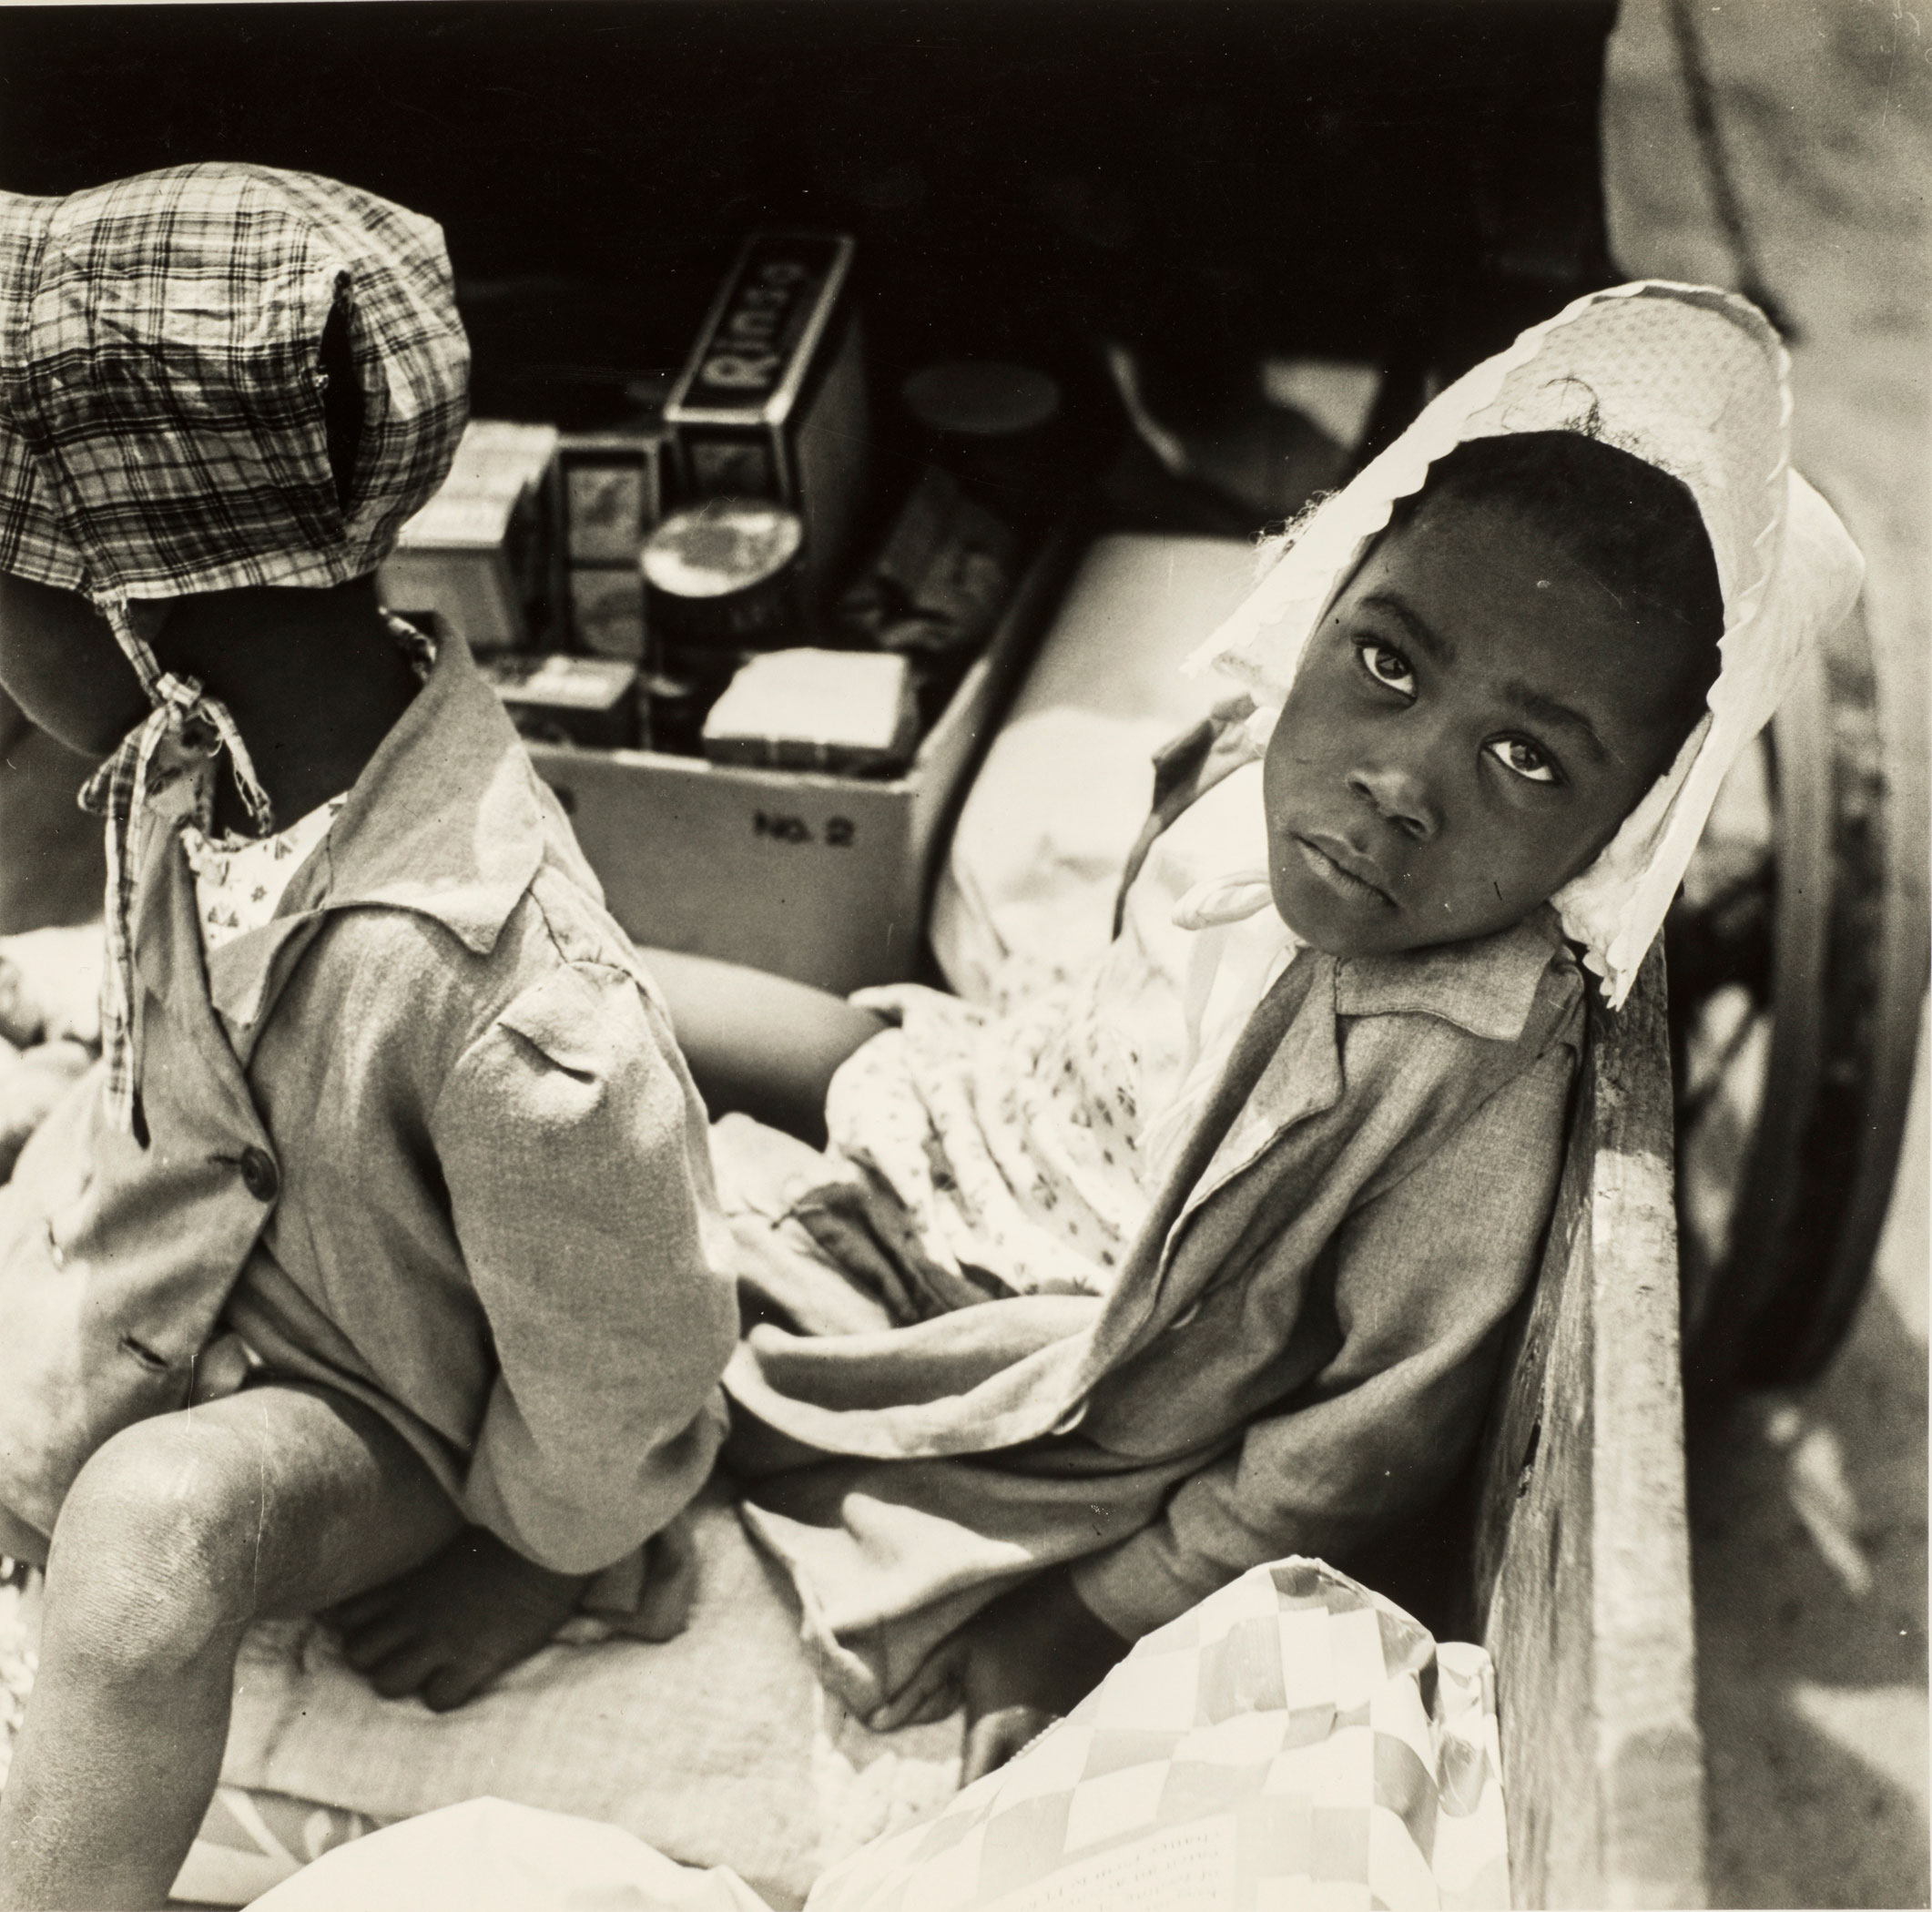 Esther Bubley,Children waiting for their mother to finish shopping, 1945; Gelatin silver print, 11 x 14 in.; Gift of Robert and Kathi Steinke; © Standard Oil (New Jersey) Collection #26162; Photographic Archives, University of Louisville; Photograph by Lee Stalsworth